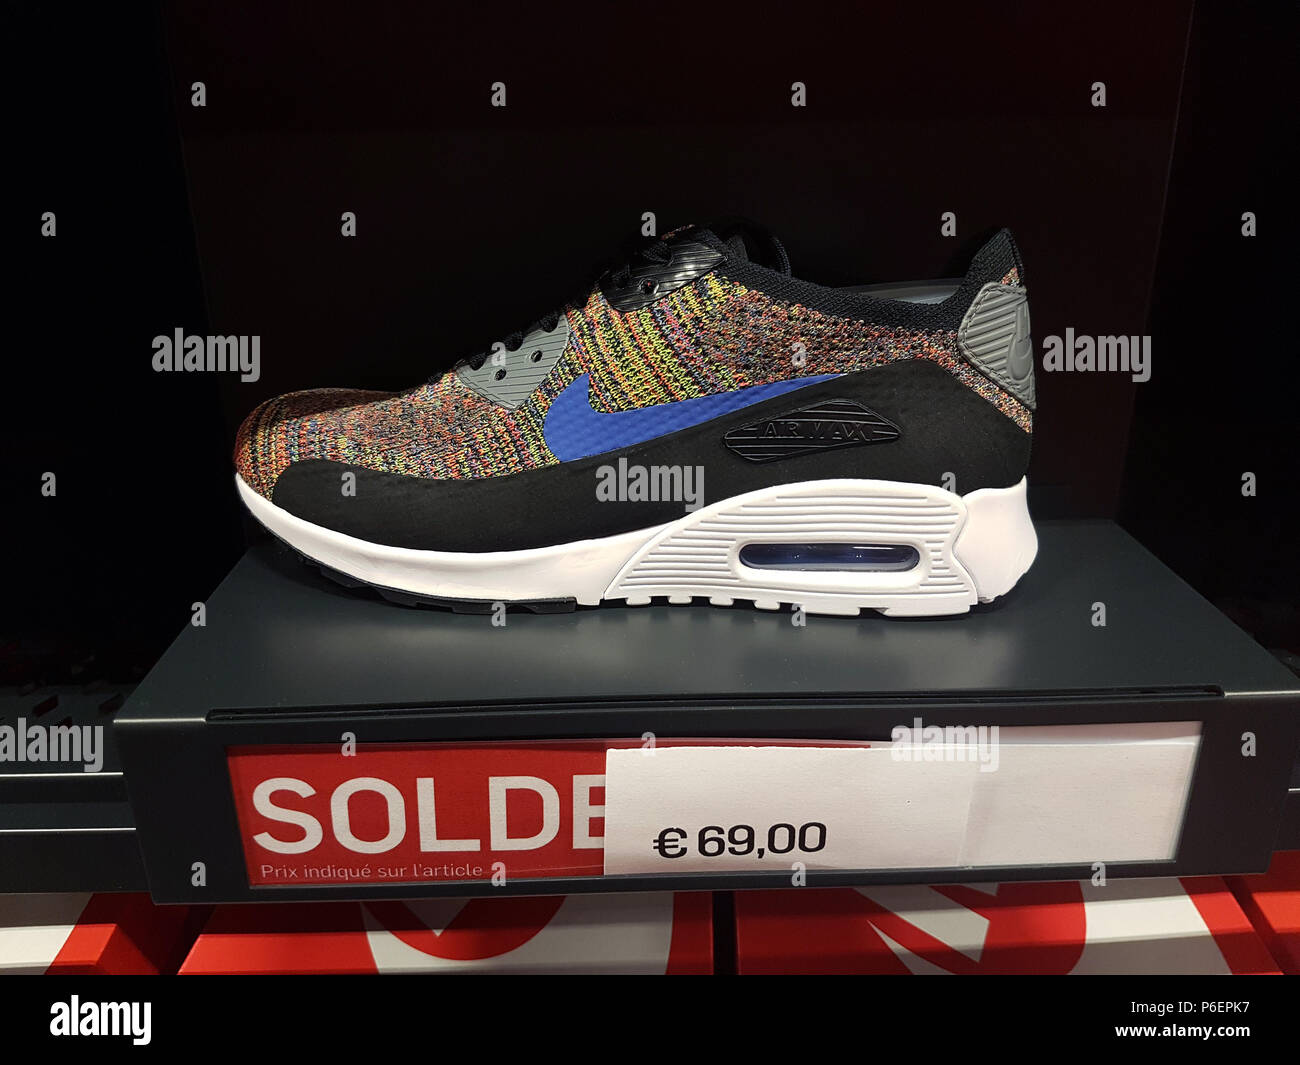 Nike Air Immagini & Nike Air Fotos Stock Alamy